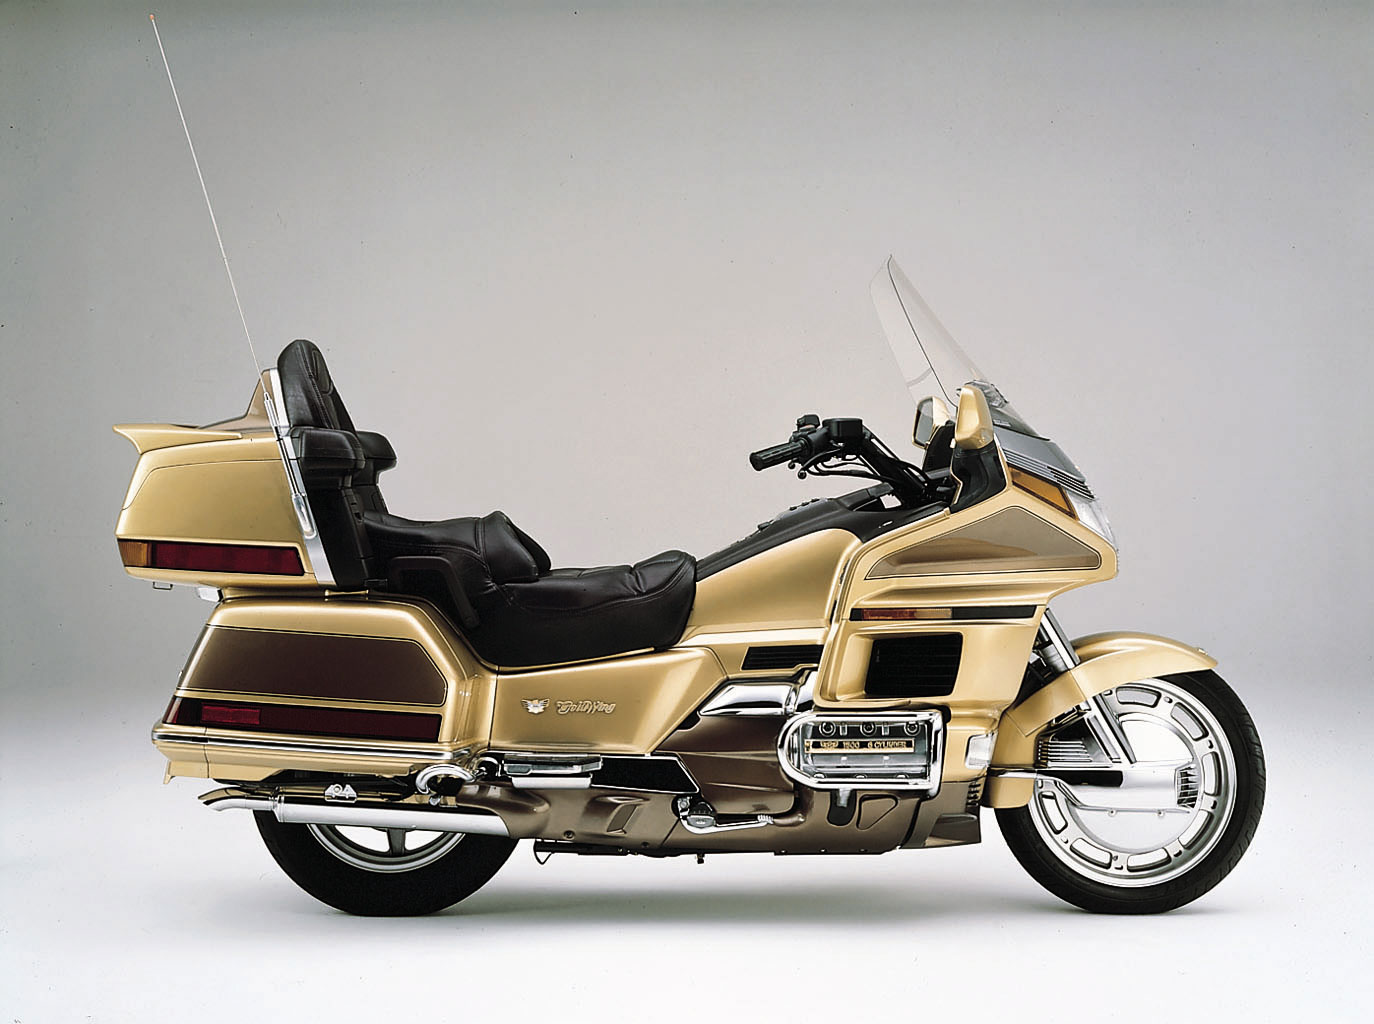 Honda GL 1200 Gold Wing images #80960